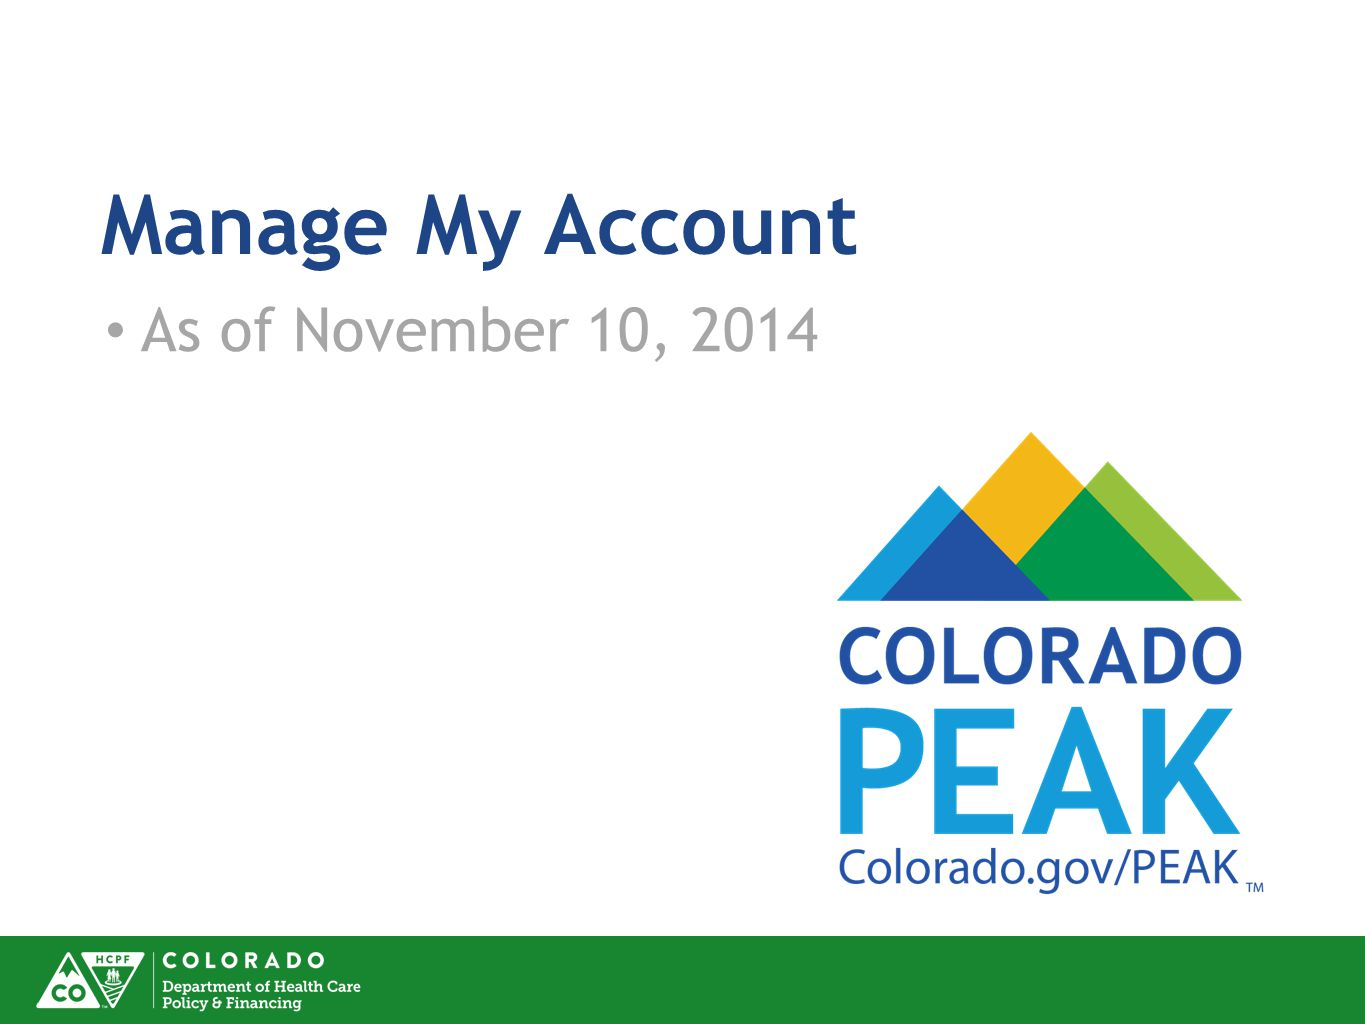 Manage My Account As of November 10, 2014